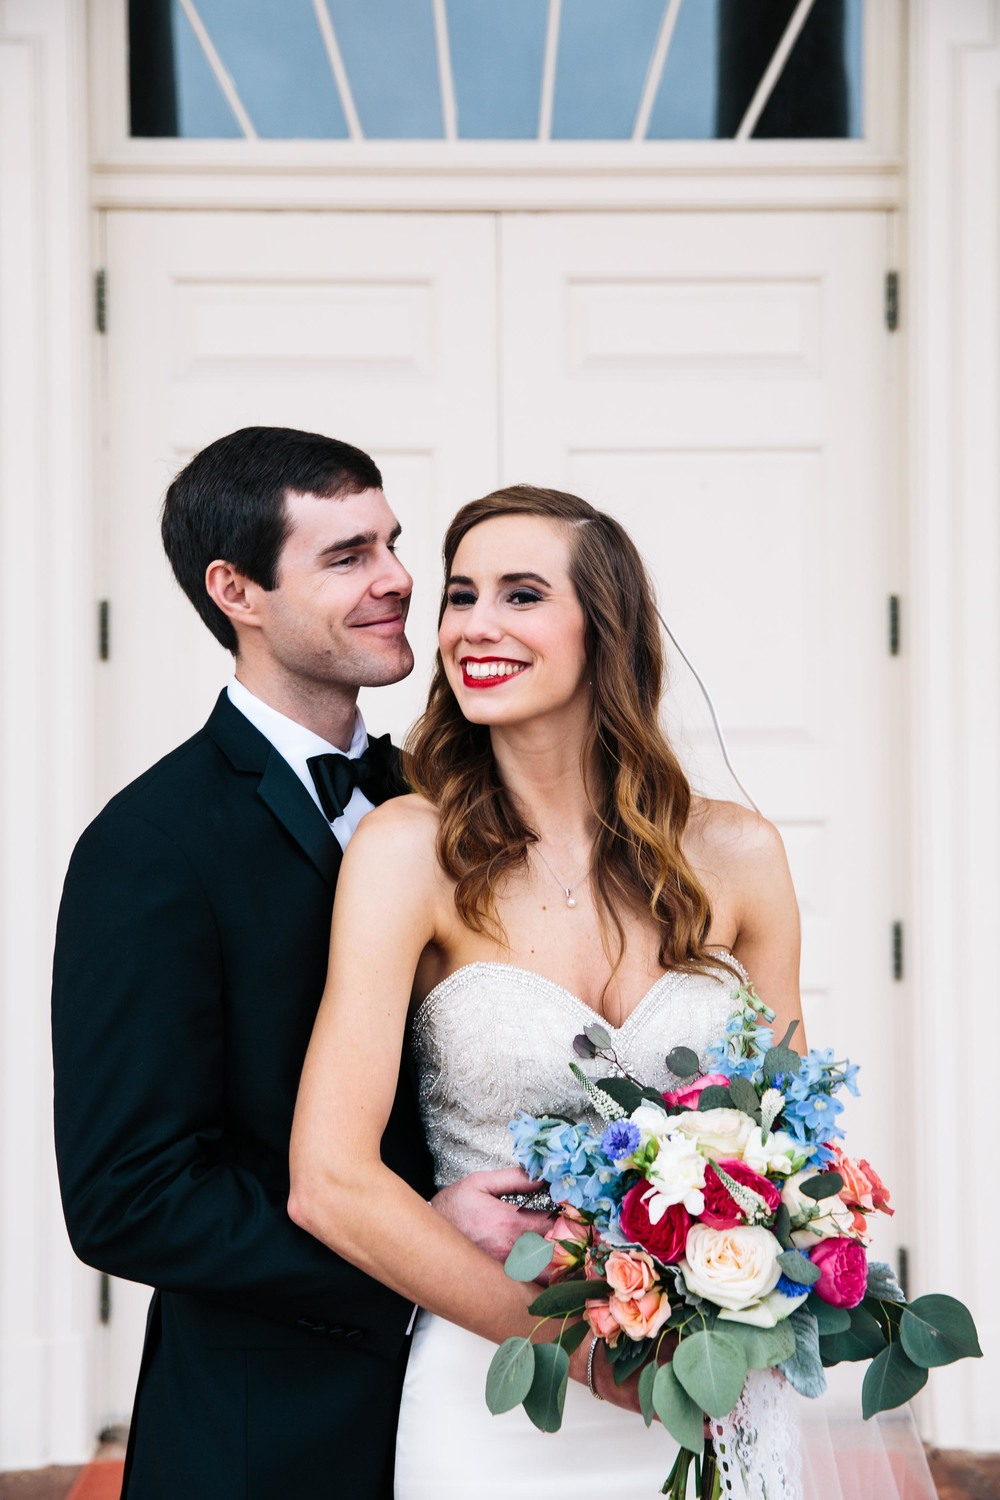 jimmy-rowalt-atlanta-wedding-photography-102.jpg